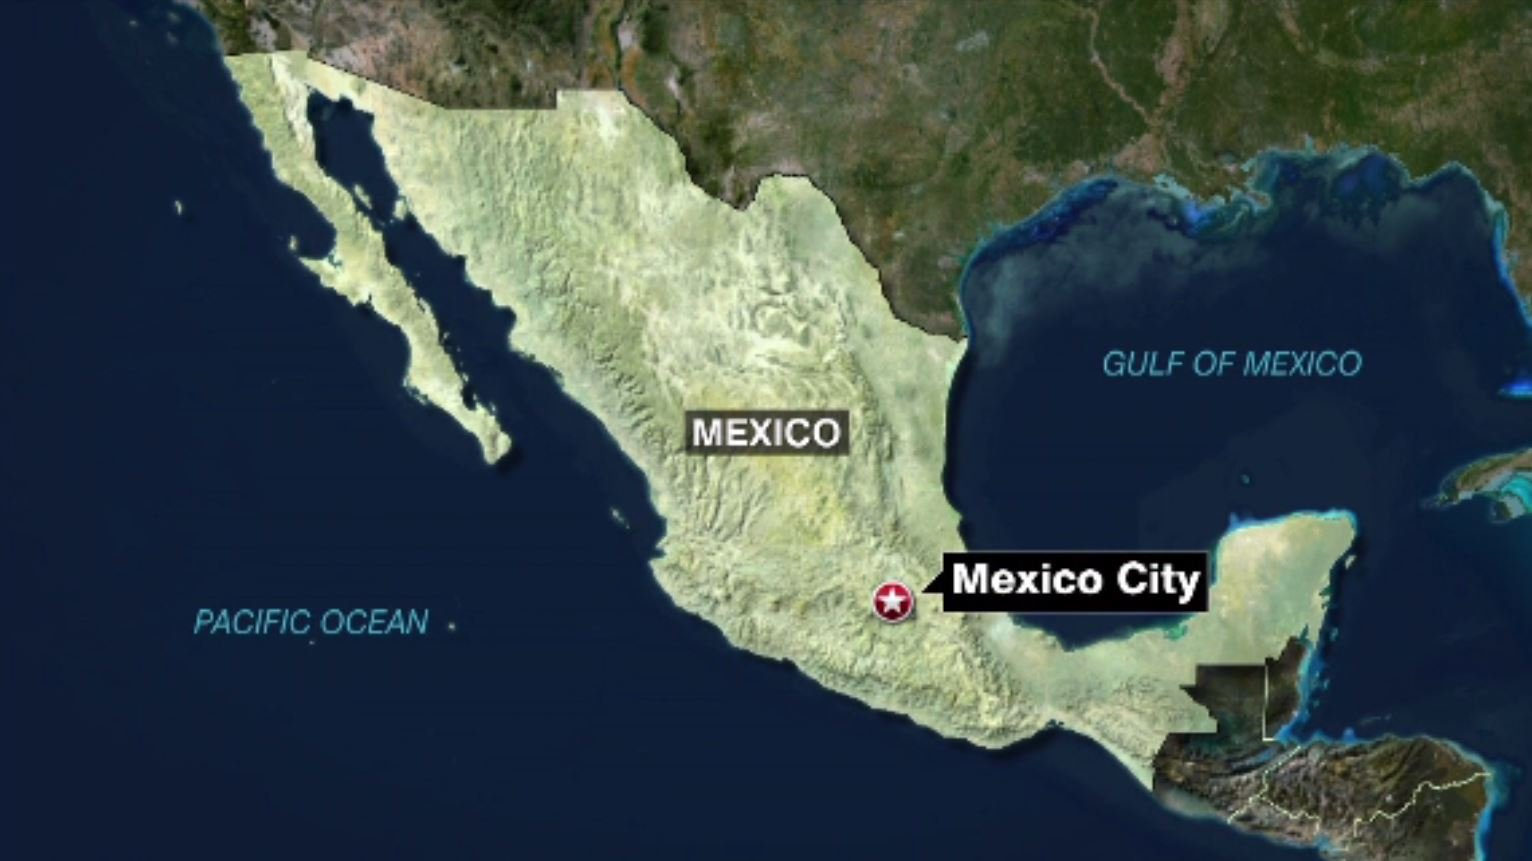 USGS reported a 7.2 magnitude earthquake in the state of Oaxaca in Mexico on Friday, Feb. 16. (Source: CNN/FOROtv)